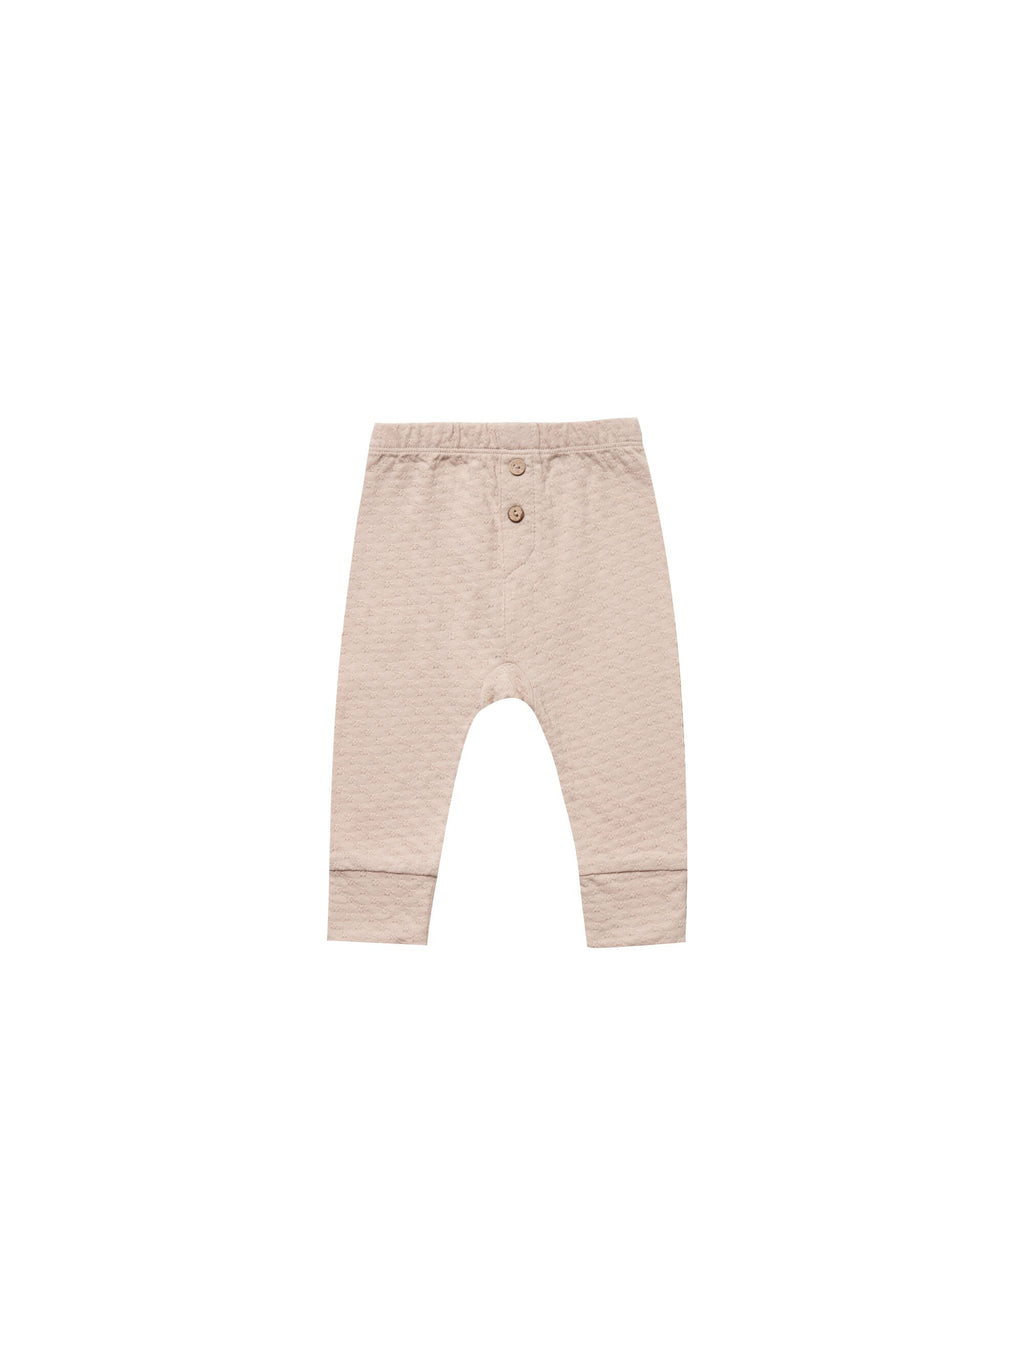 Quincy Mae Pointelle Pant - Rose